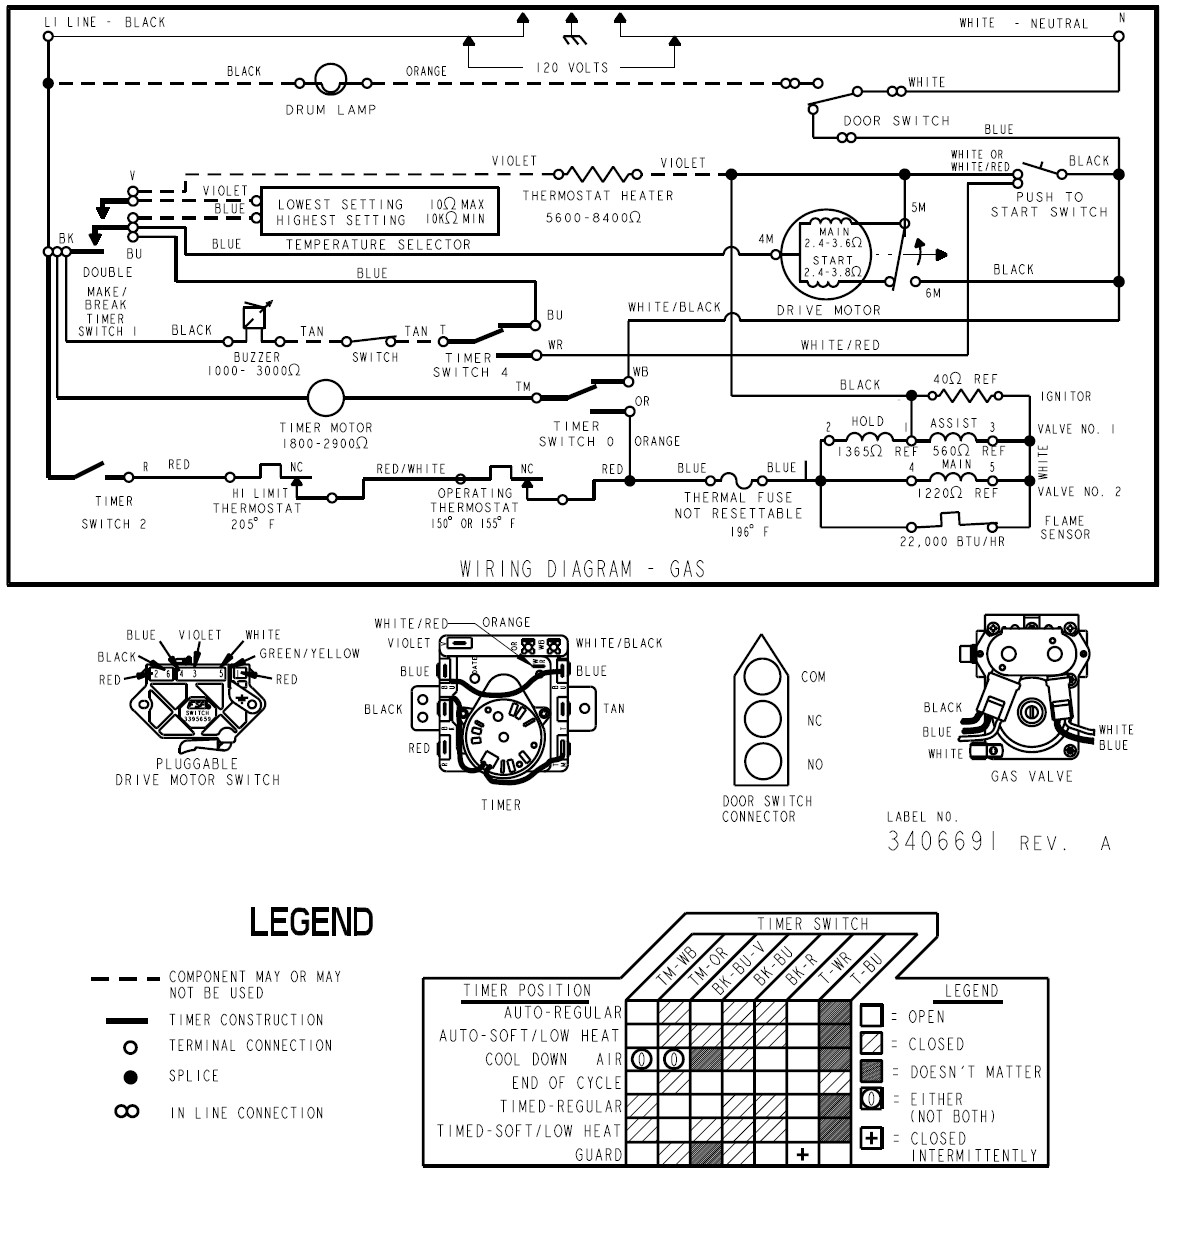 wiring diagram for whirlpool gas dryer the wiring diagram whirlpool gas dryer electrical diagram nodasystech wiring diagram